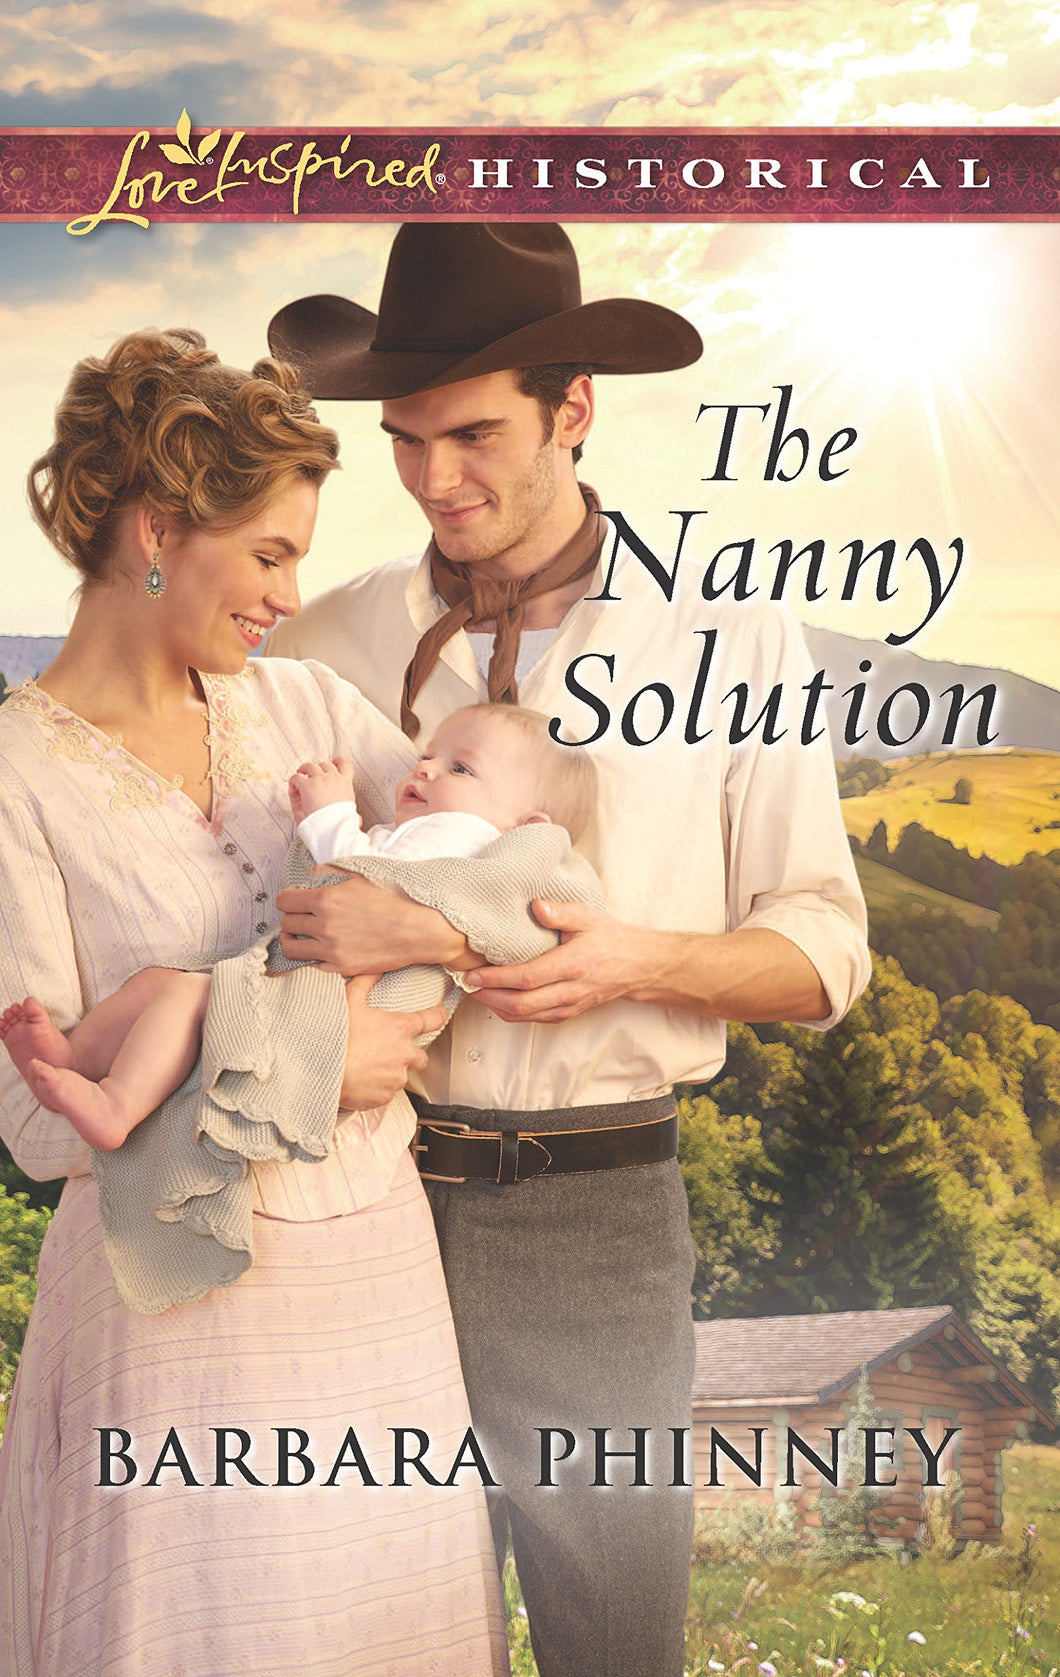 The Nanny Solution (Love Inspired Historical)